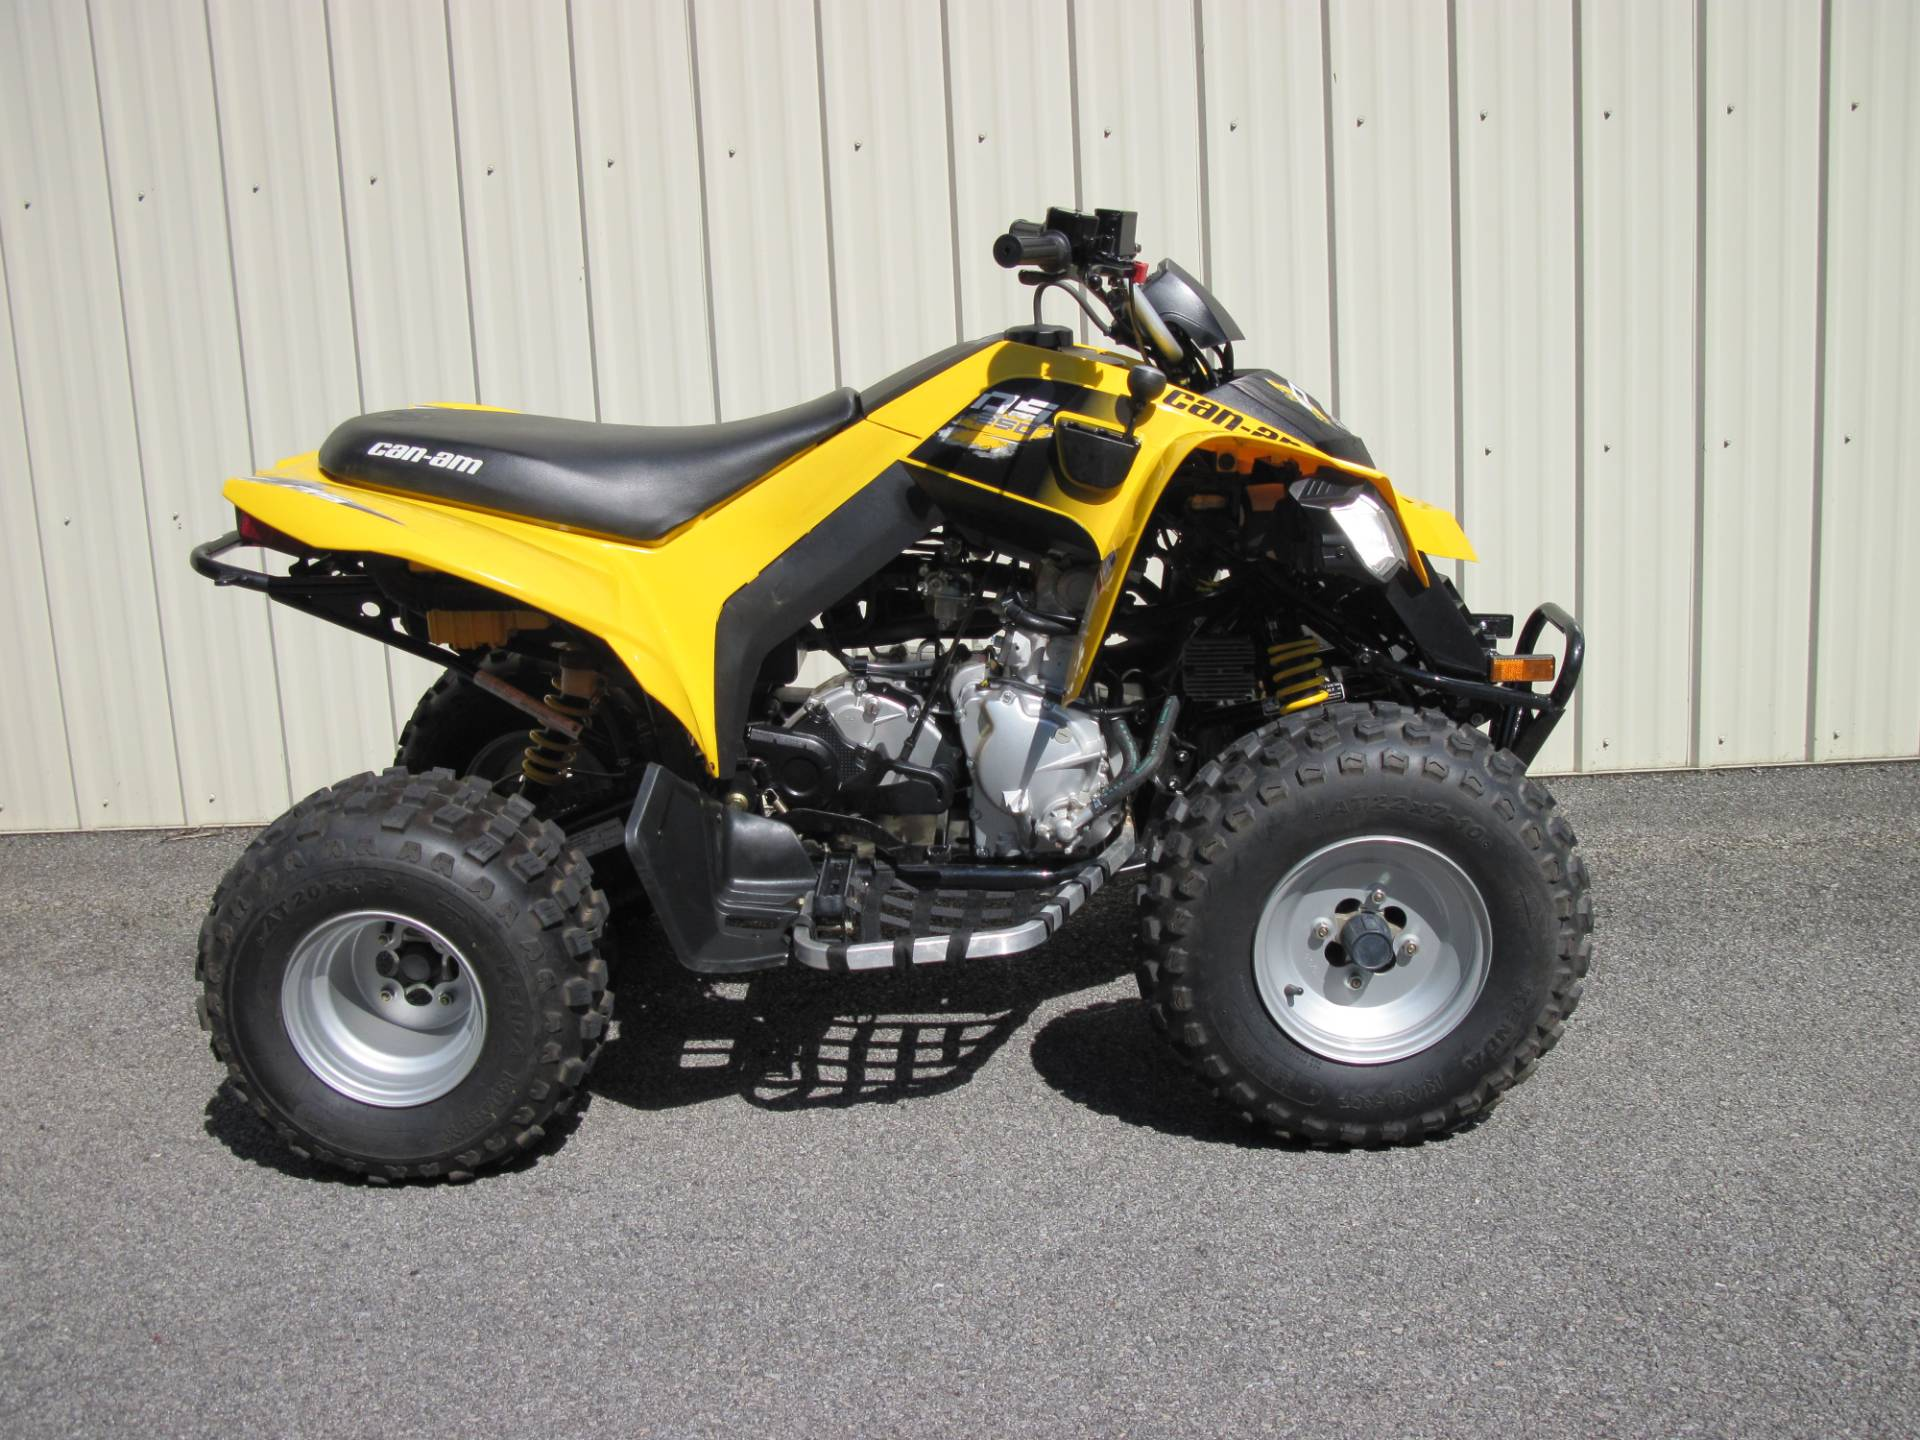 2012 Can-Am DS 250 for sale 17794